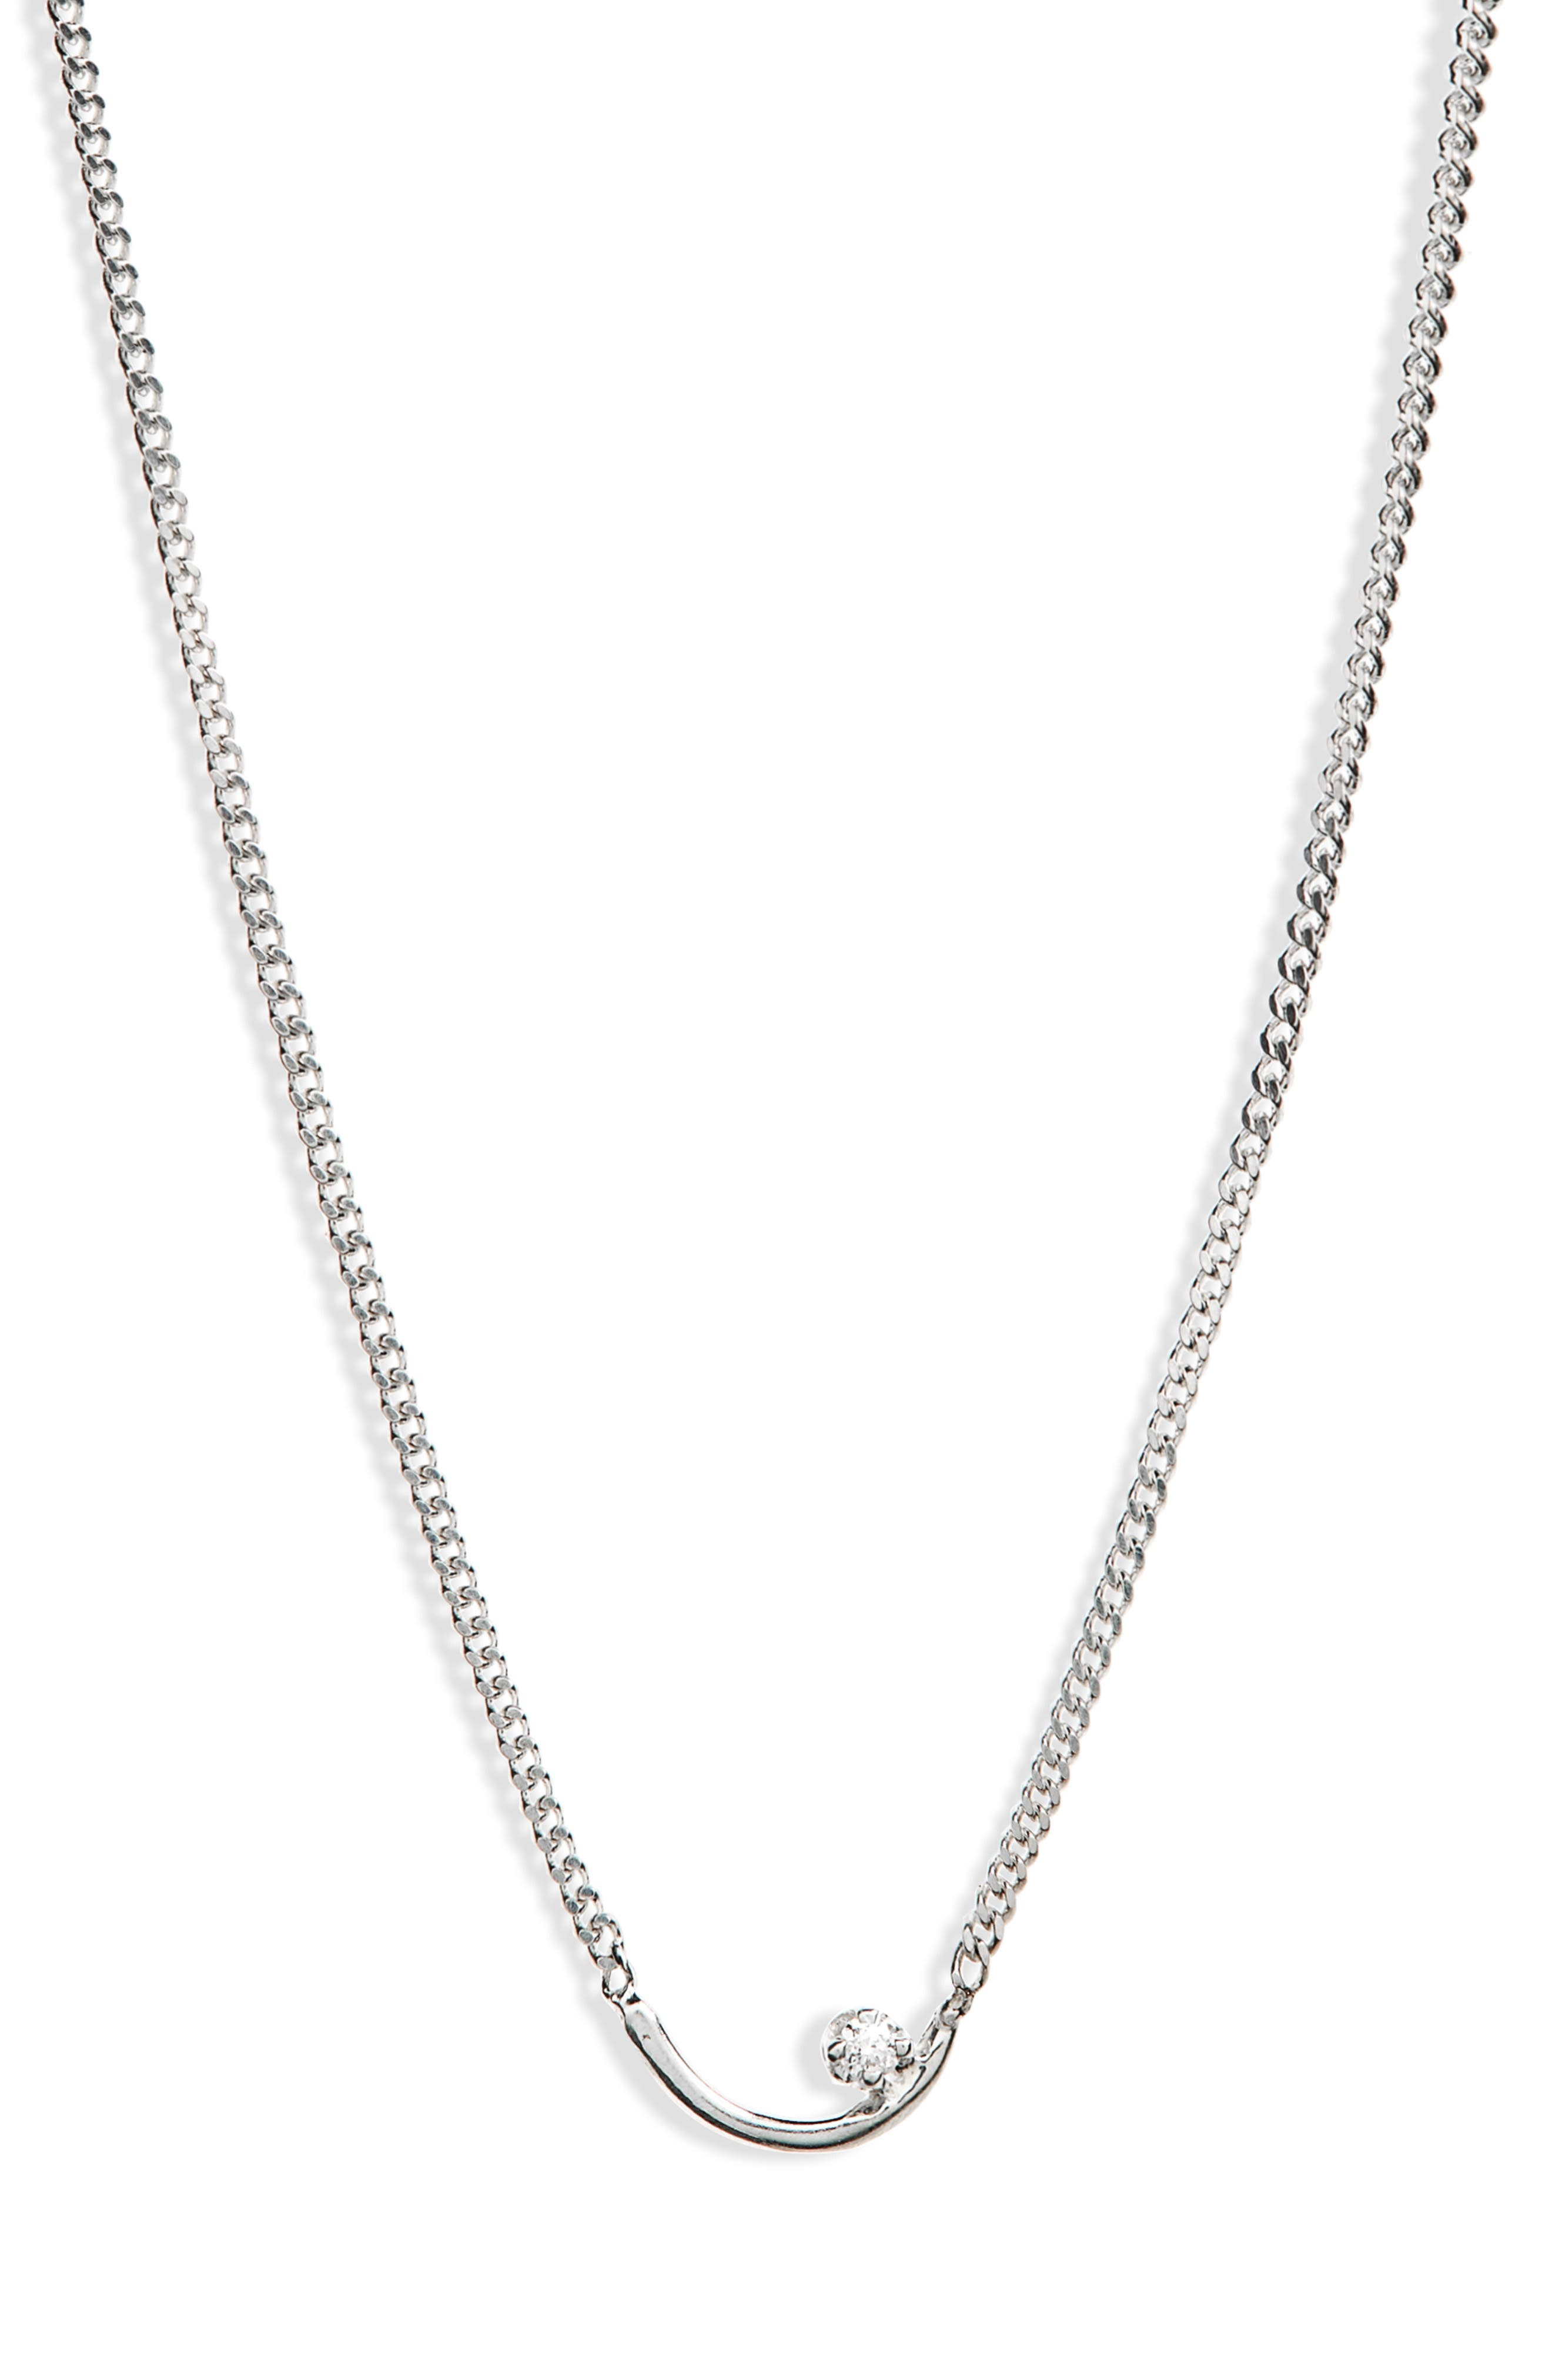 Arc Lineage Necklace,                             Main thumbnail 1, color,                             Silver/ White Diamond